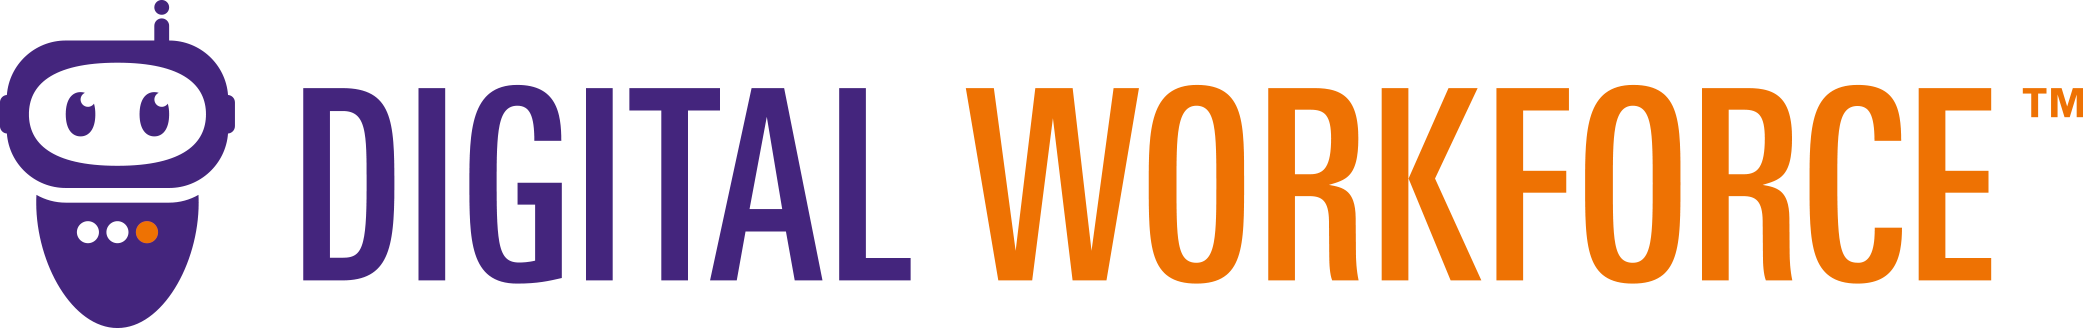 DigitalWorkforce1-logo-CMYK.png